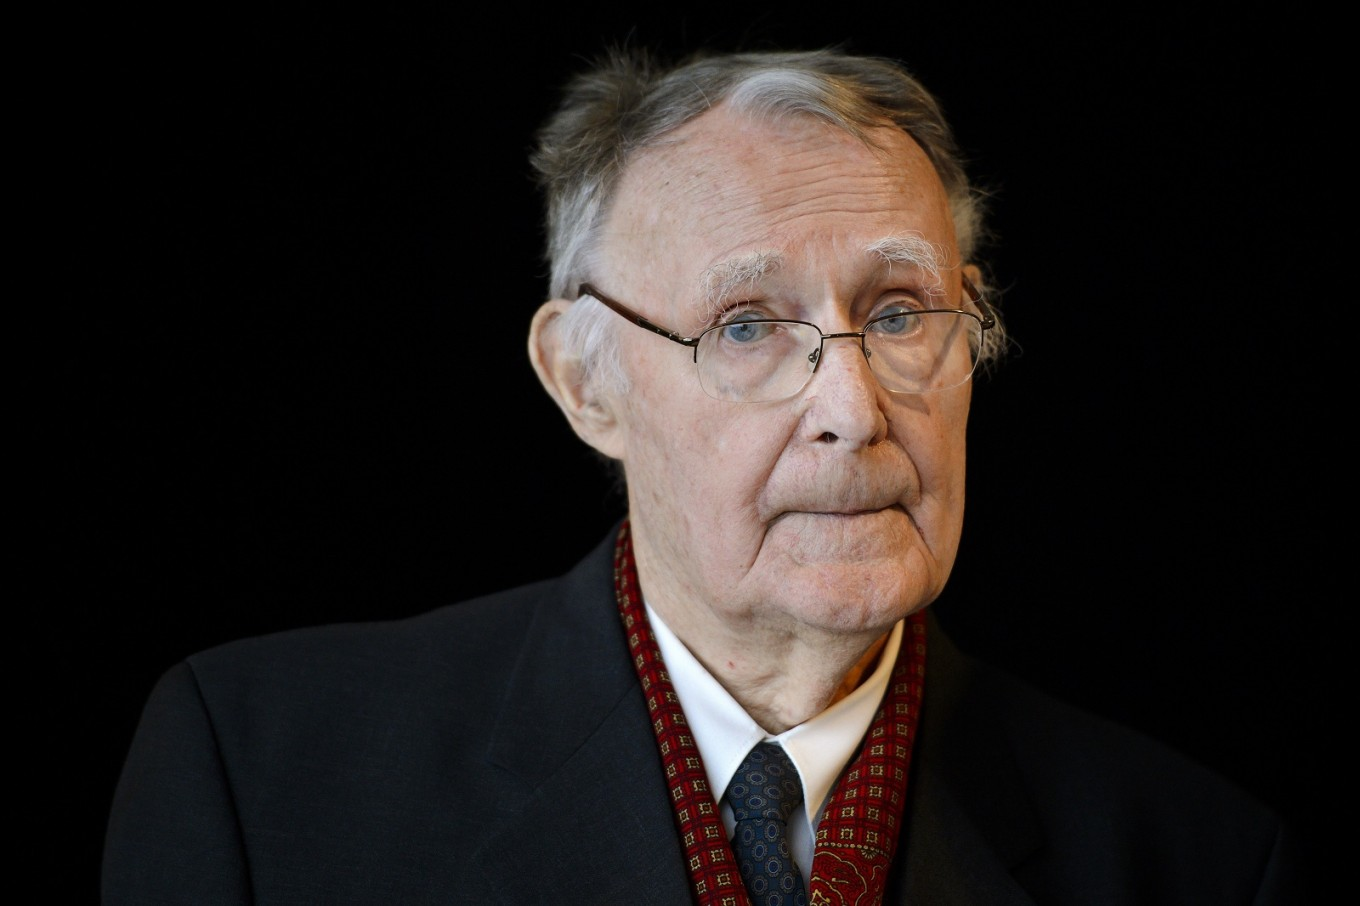 Flat-pack empire: Five things to know about Kamprad and Ikea